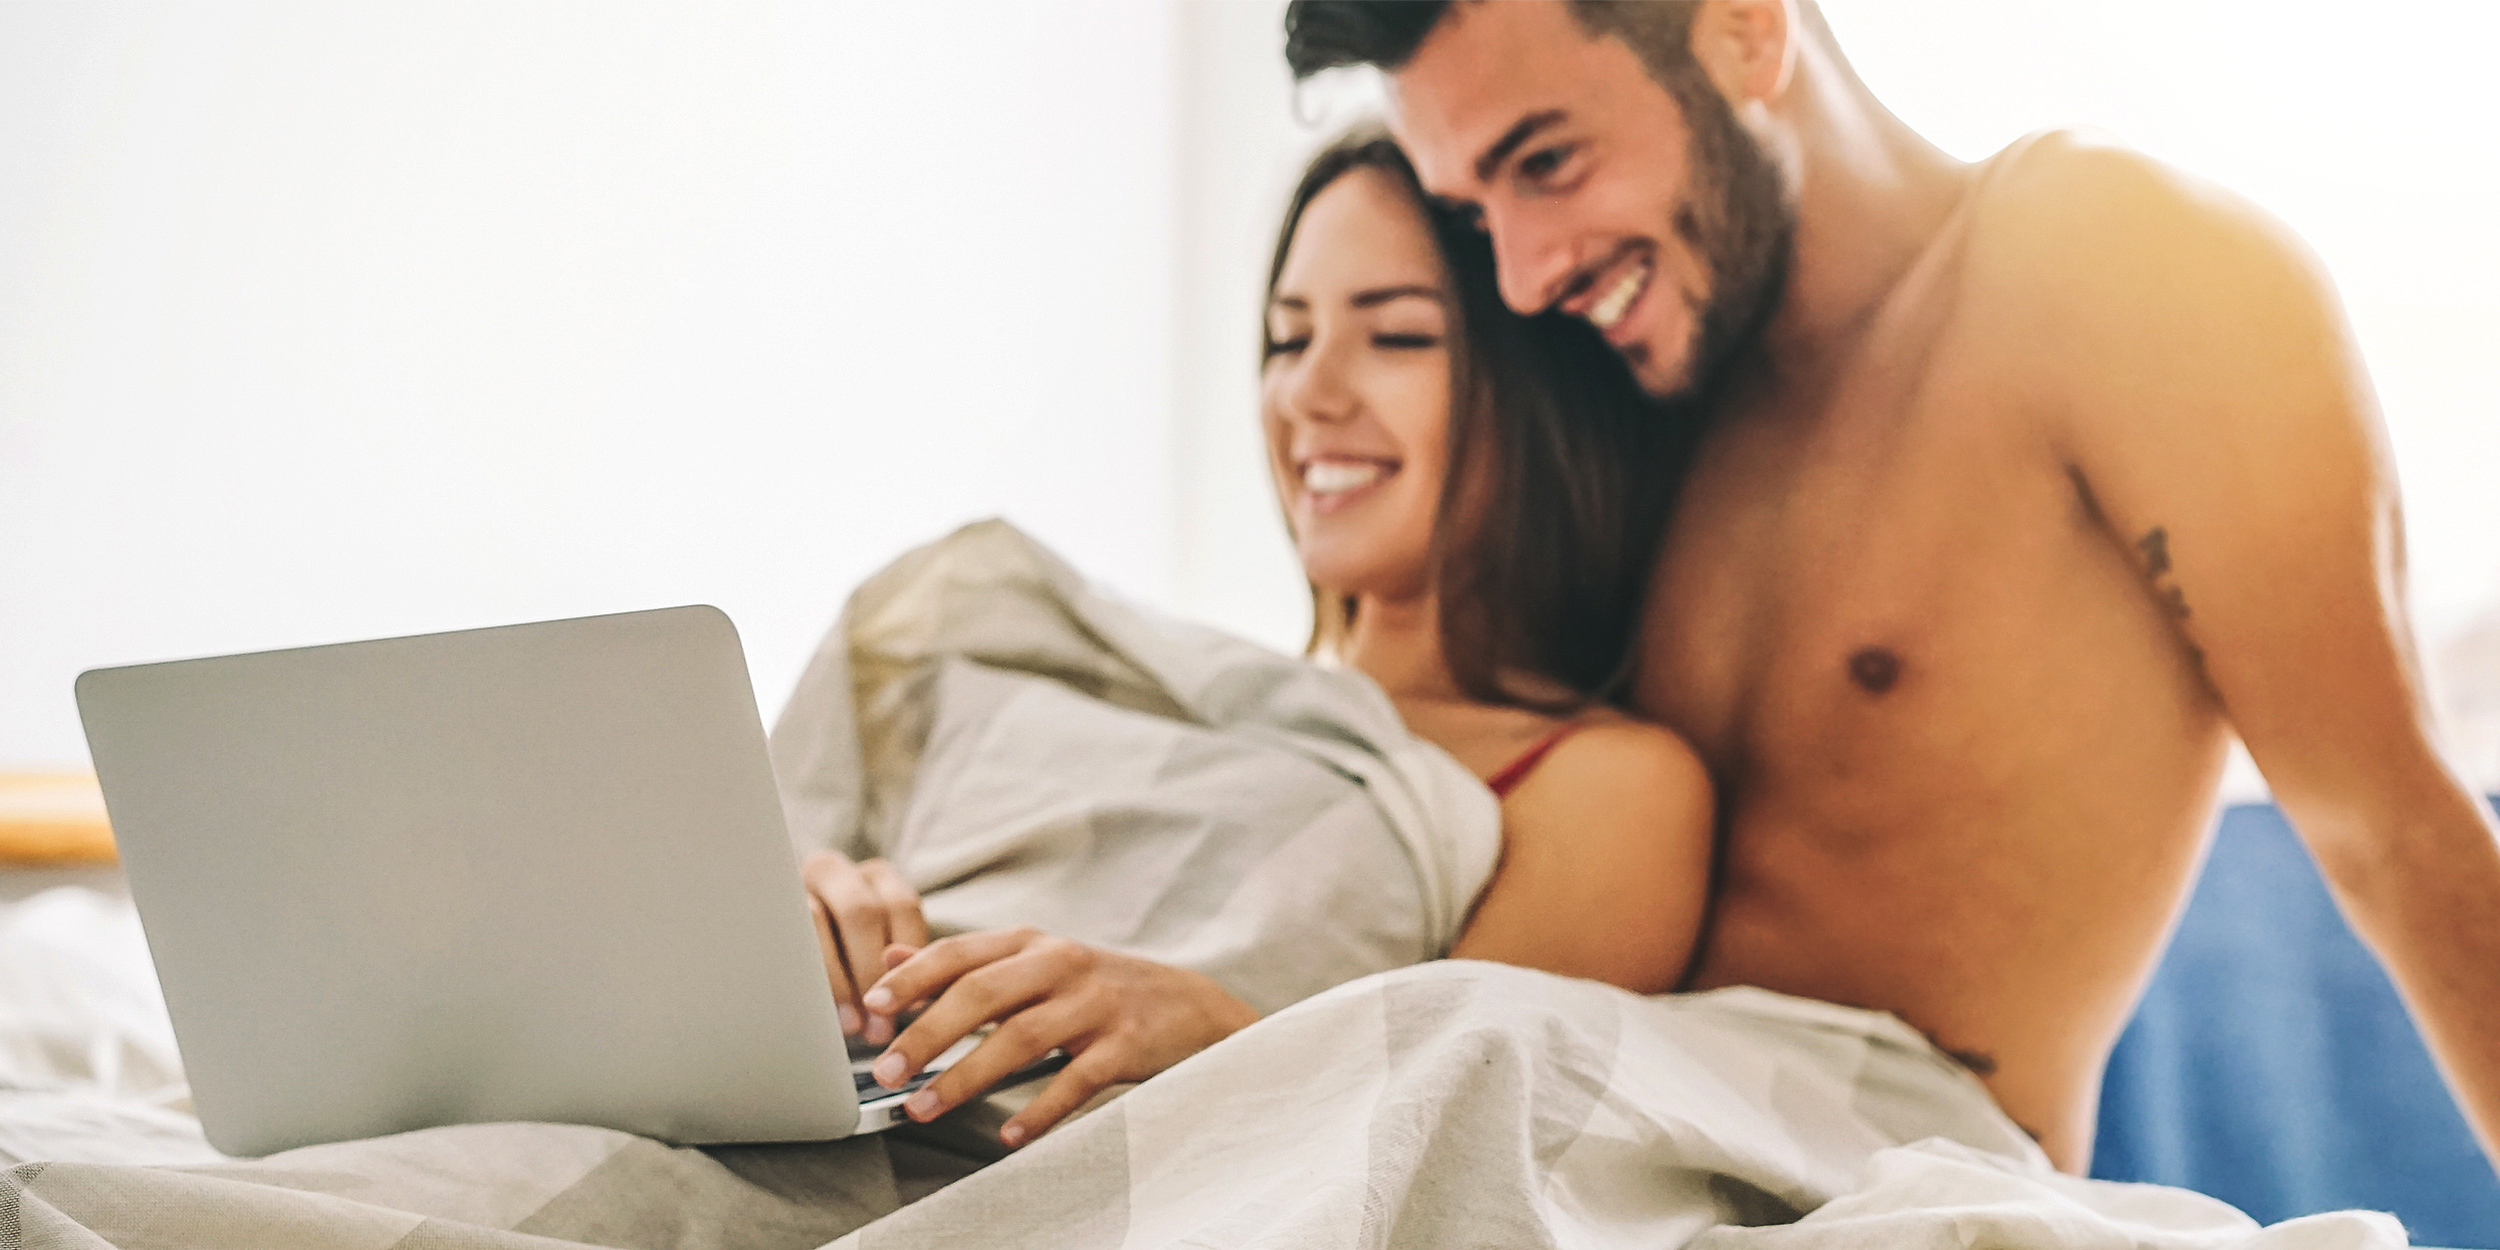 Classy couples oriented porn